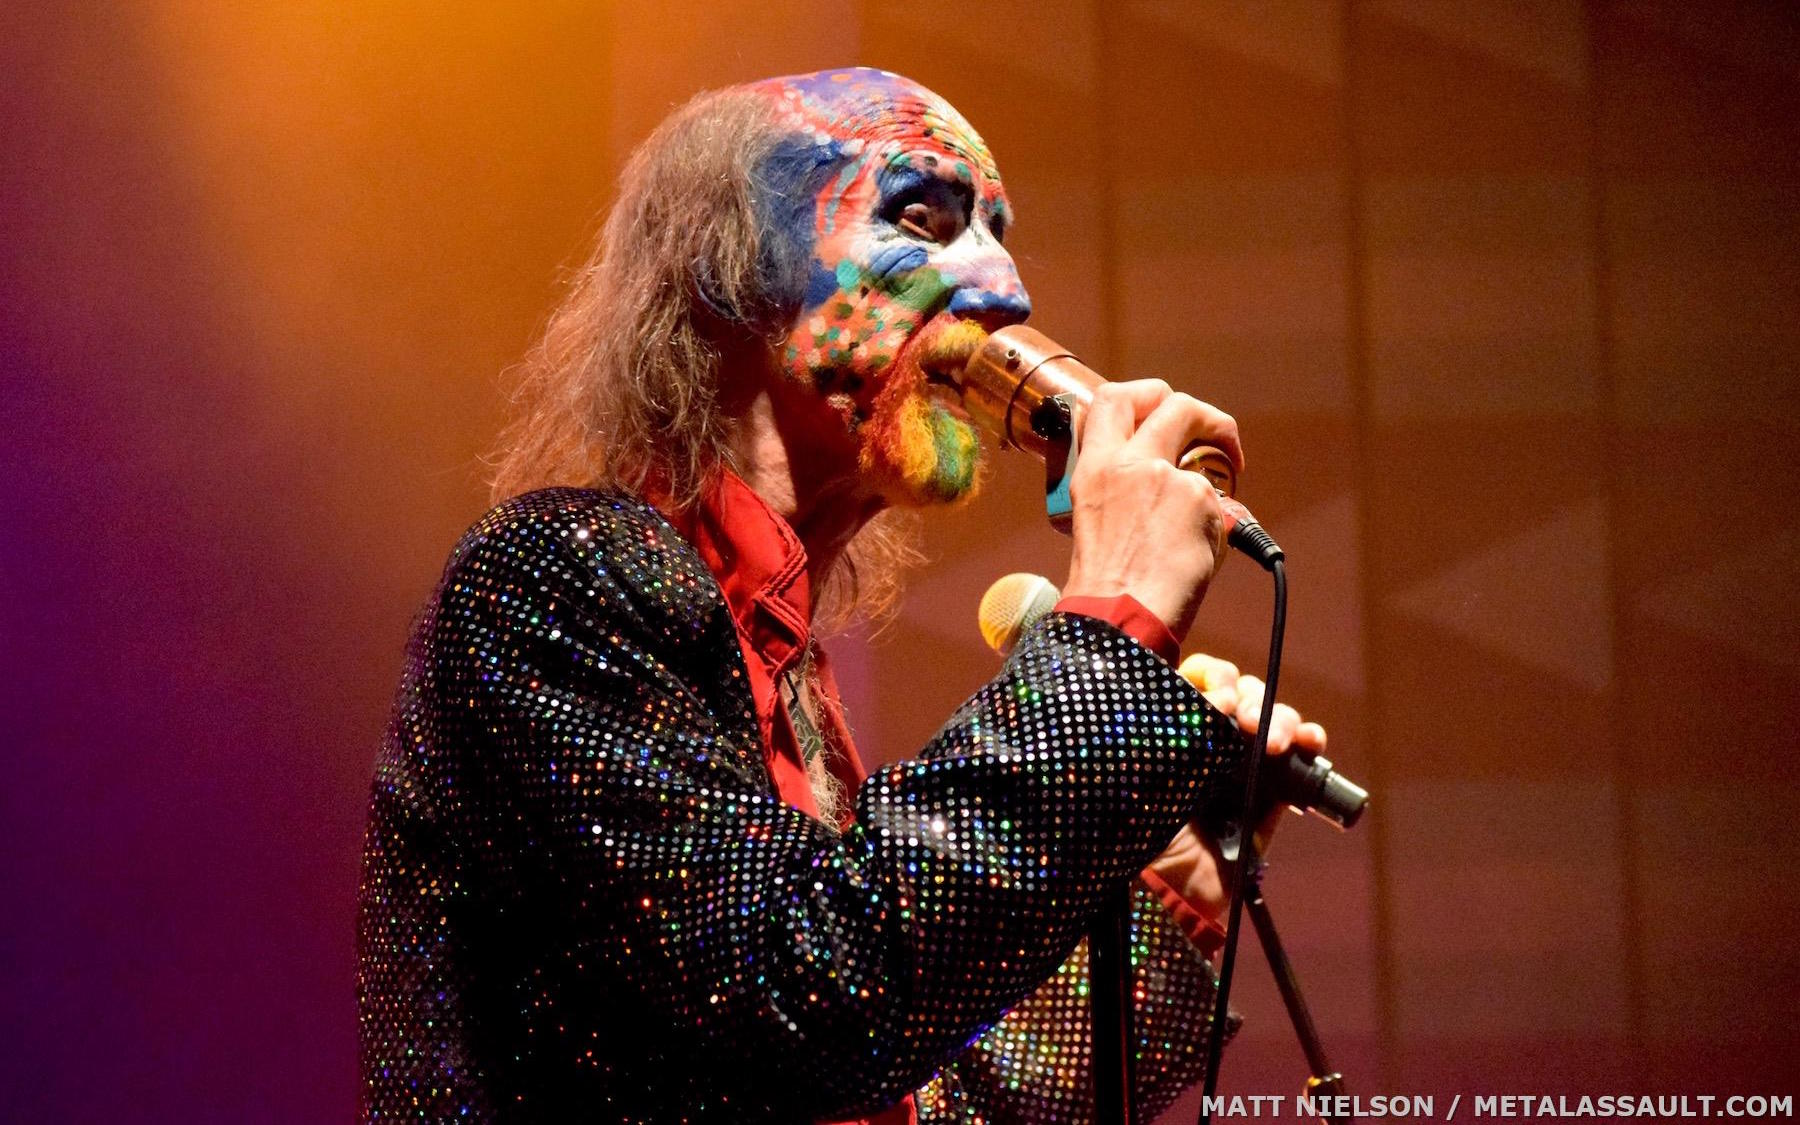 Concert Review + Live Photos: THE CRAZY WORLD OF ARTHUR BROWN w/ White Hills, Electric Citizen